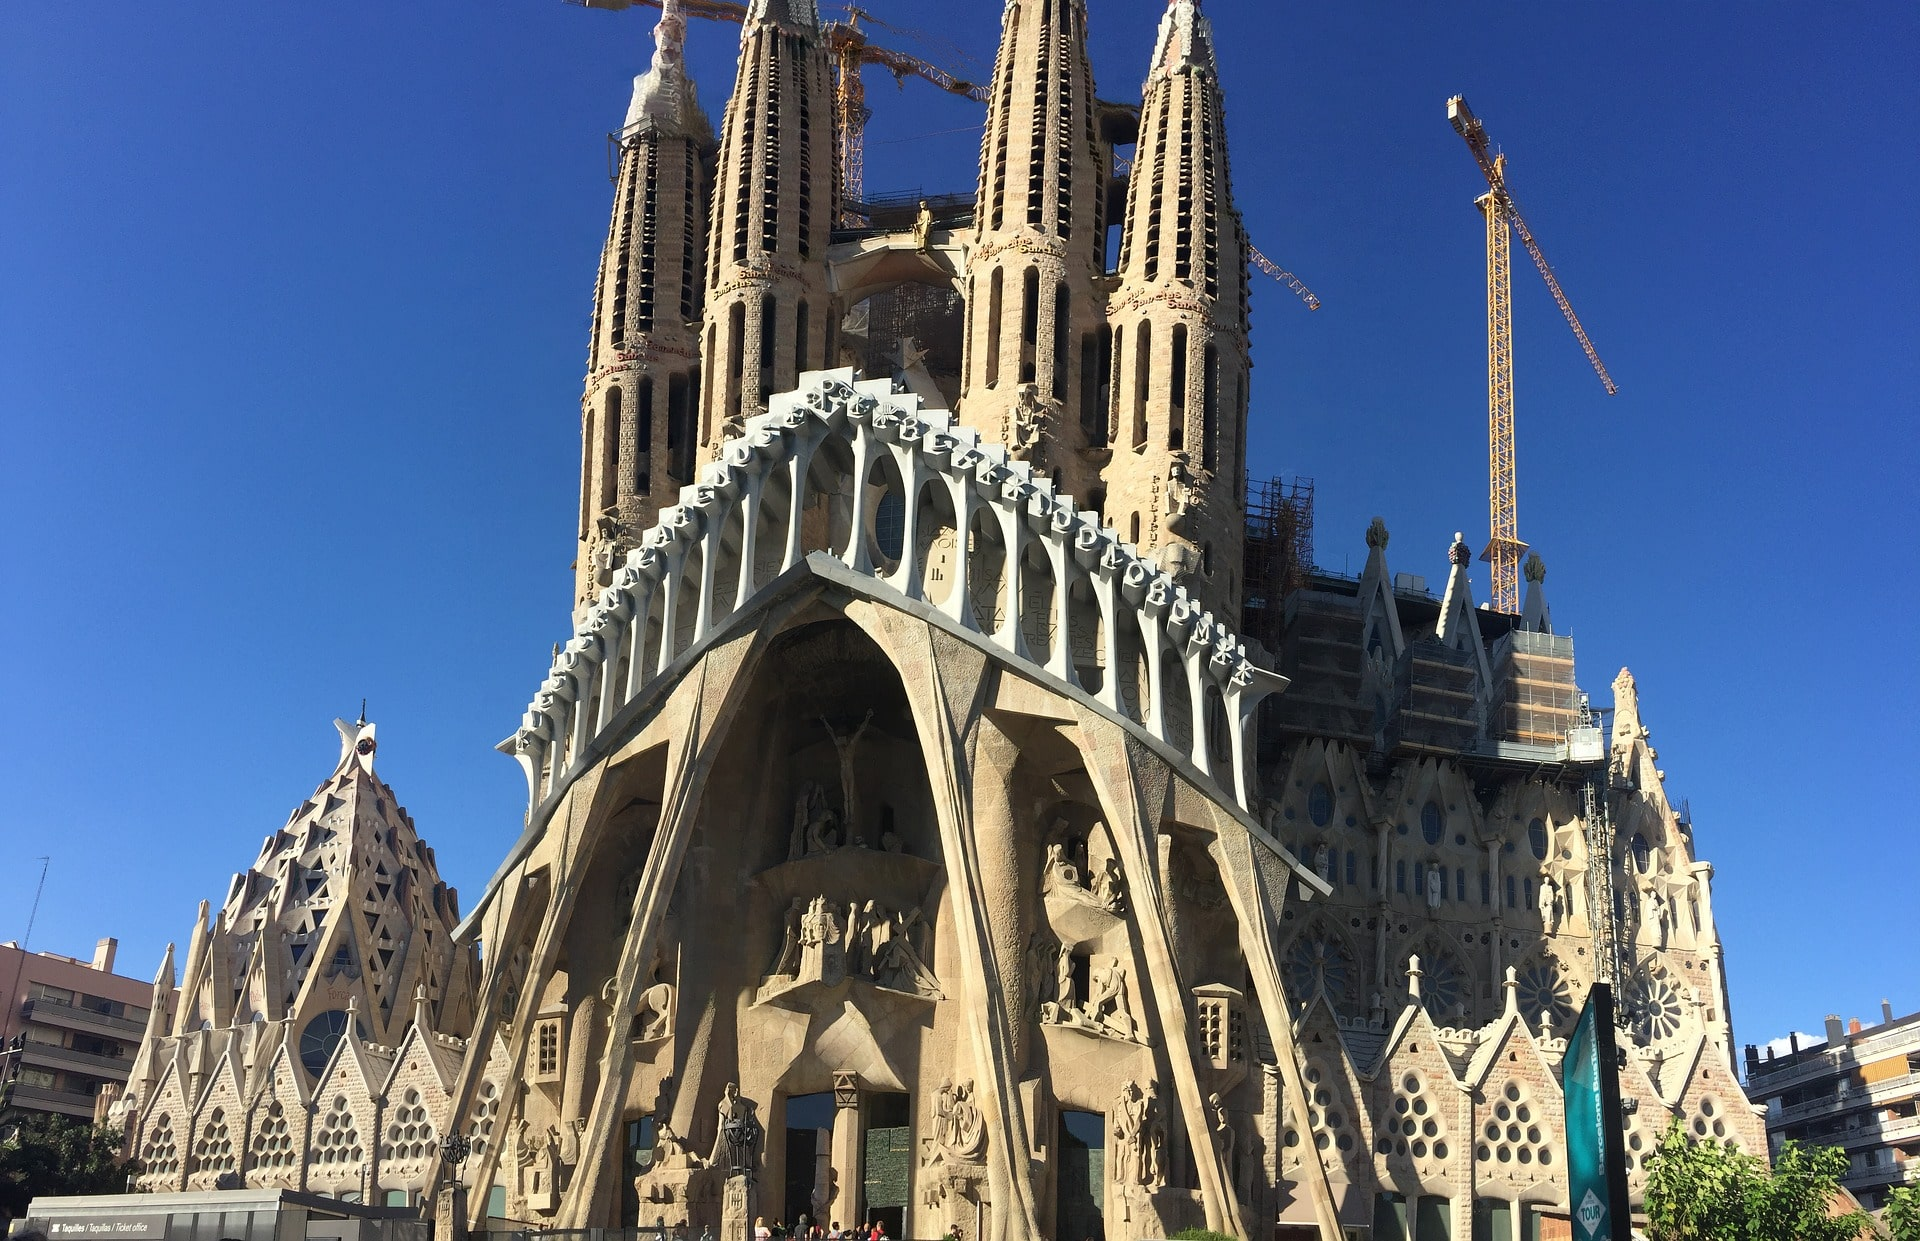 La Sagrada Familia in Barcelona is one of the most impressive places to visit in Spain